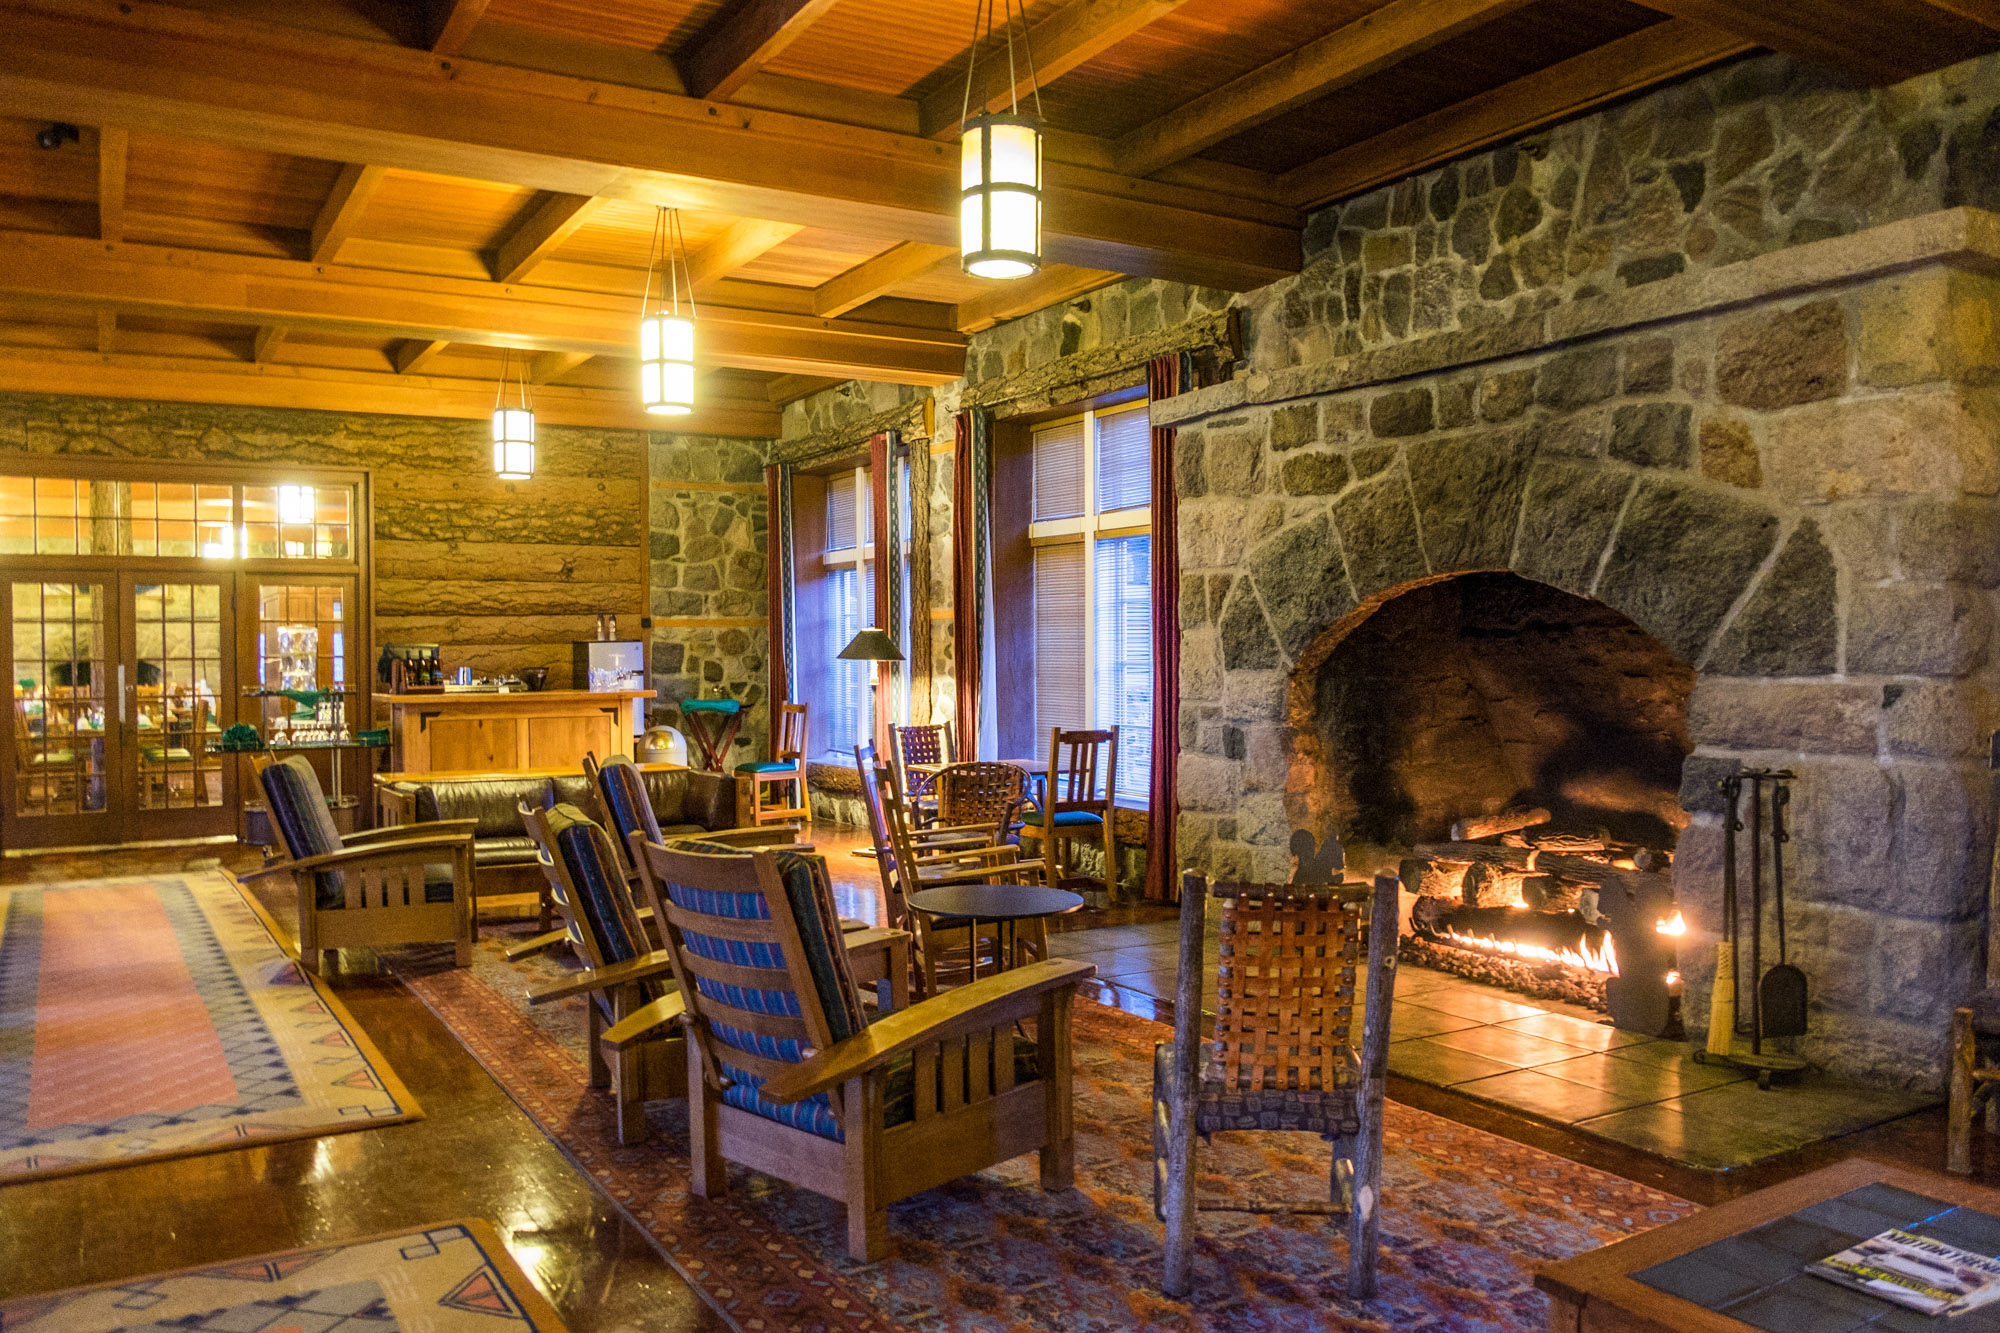 This is the main sitting room inside the lodge, called The Great Hall.